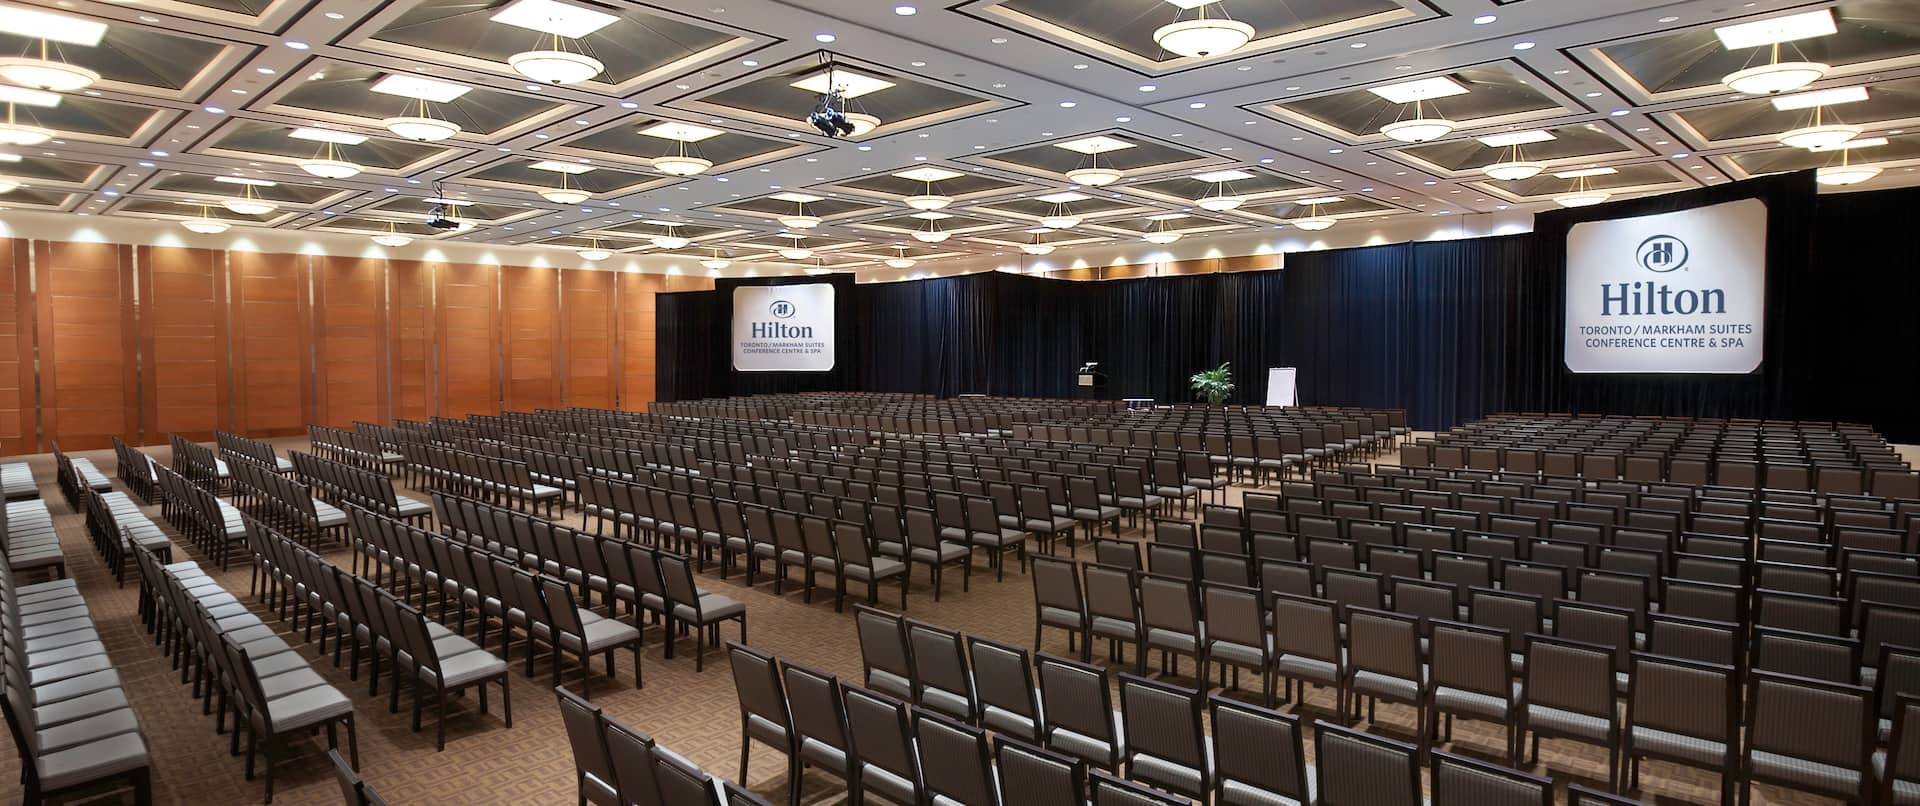 Conference Centre in Theatre Set Up